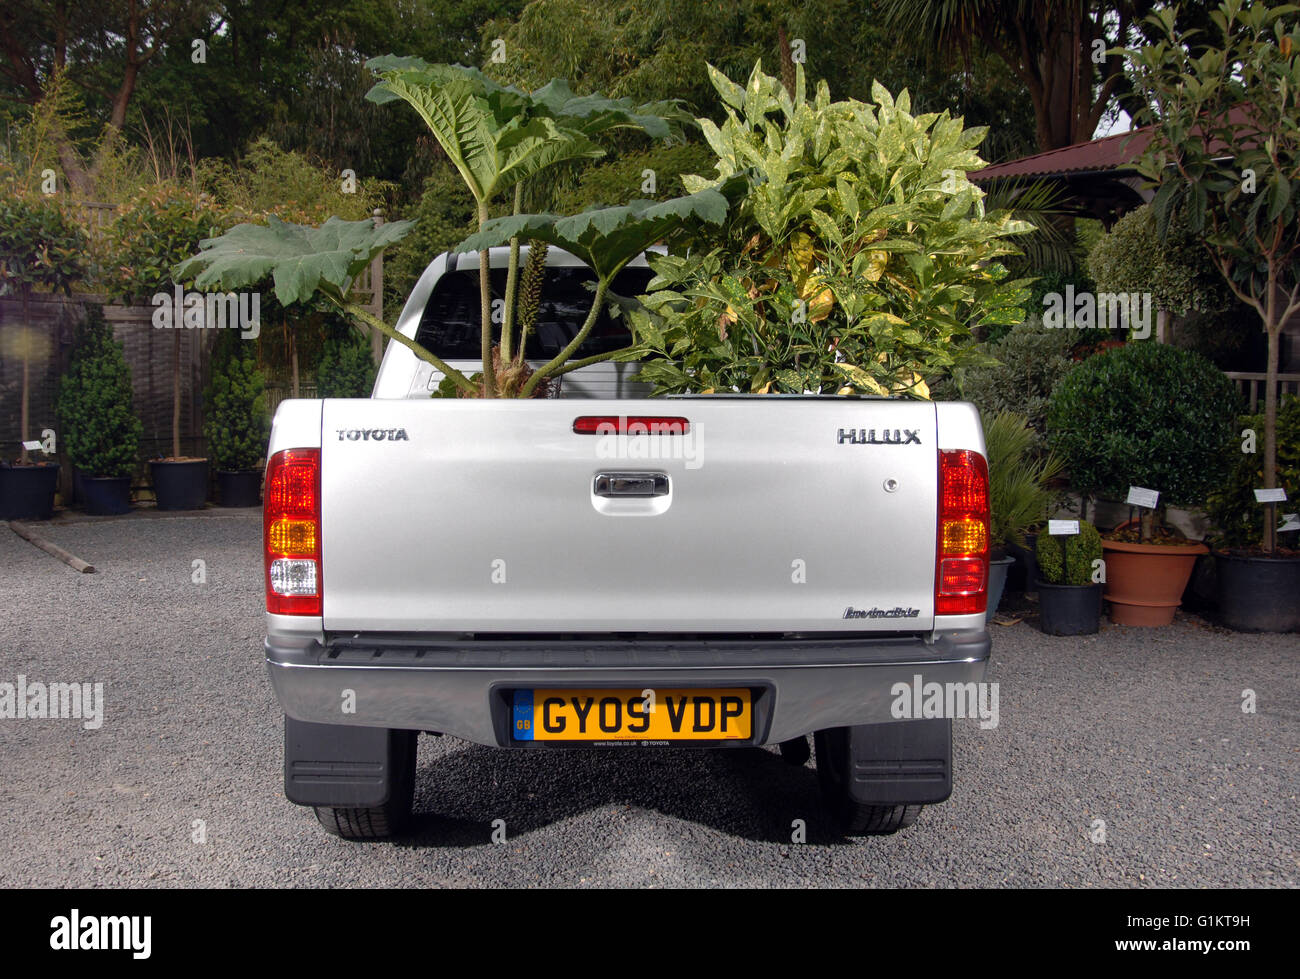 2009 Toyota Hilux pickup truck loaded with trees and plants - Stock Image